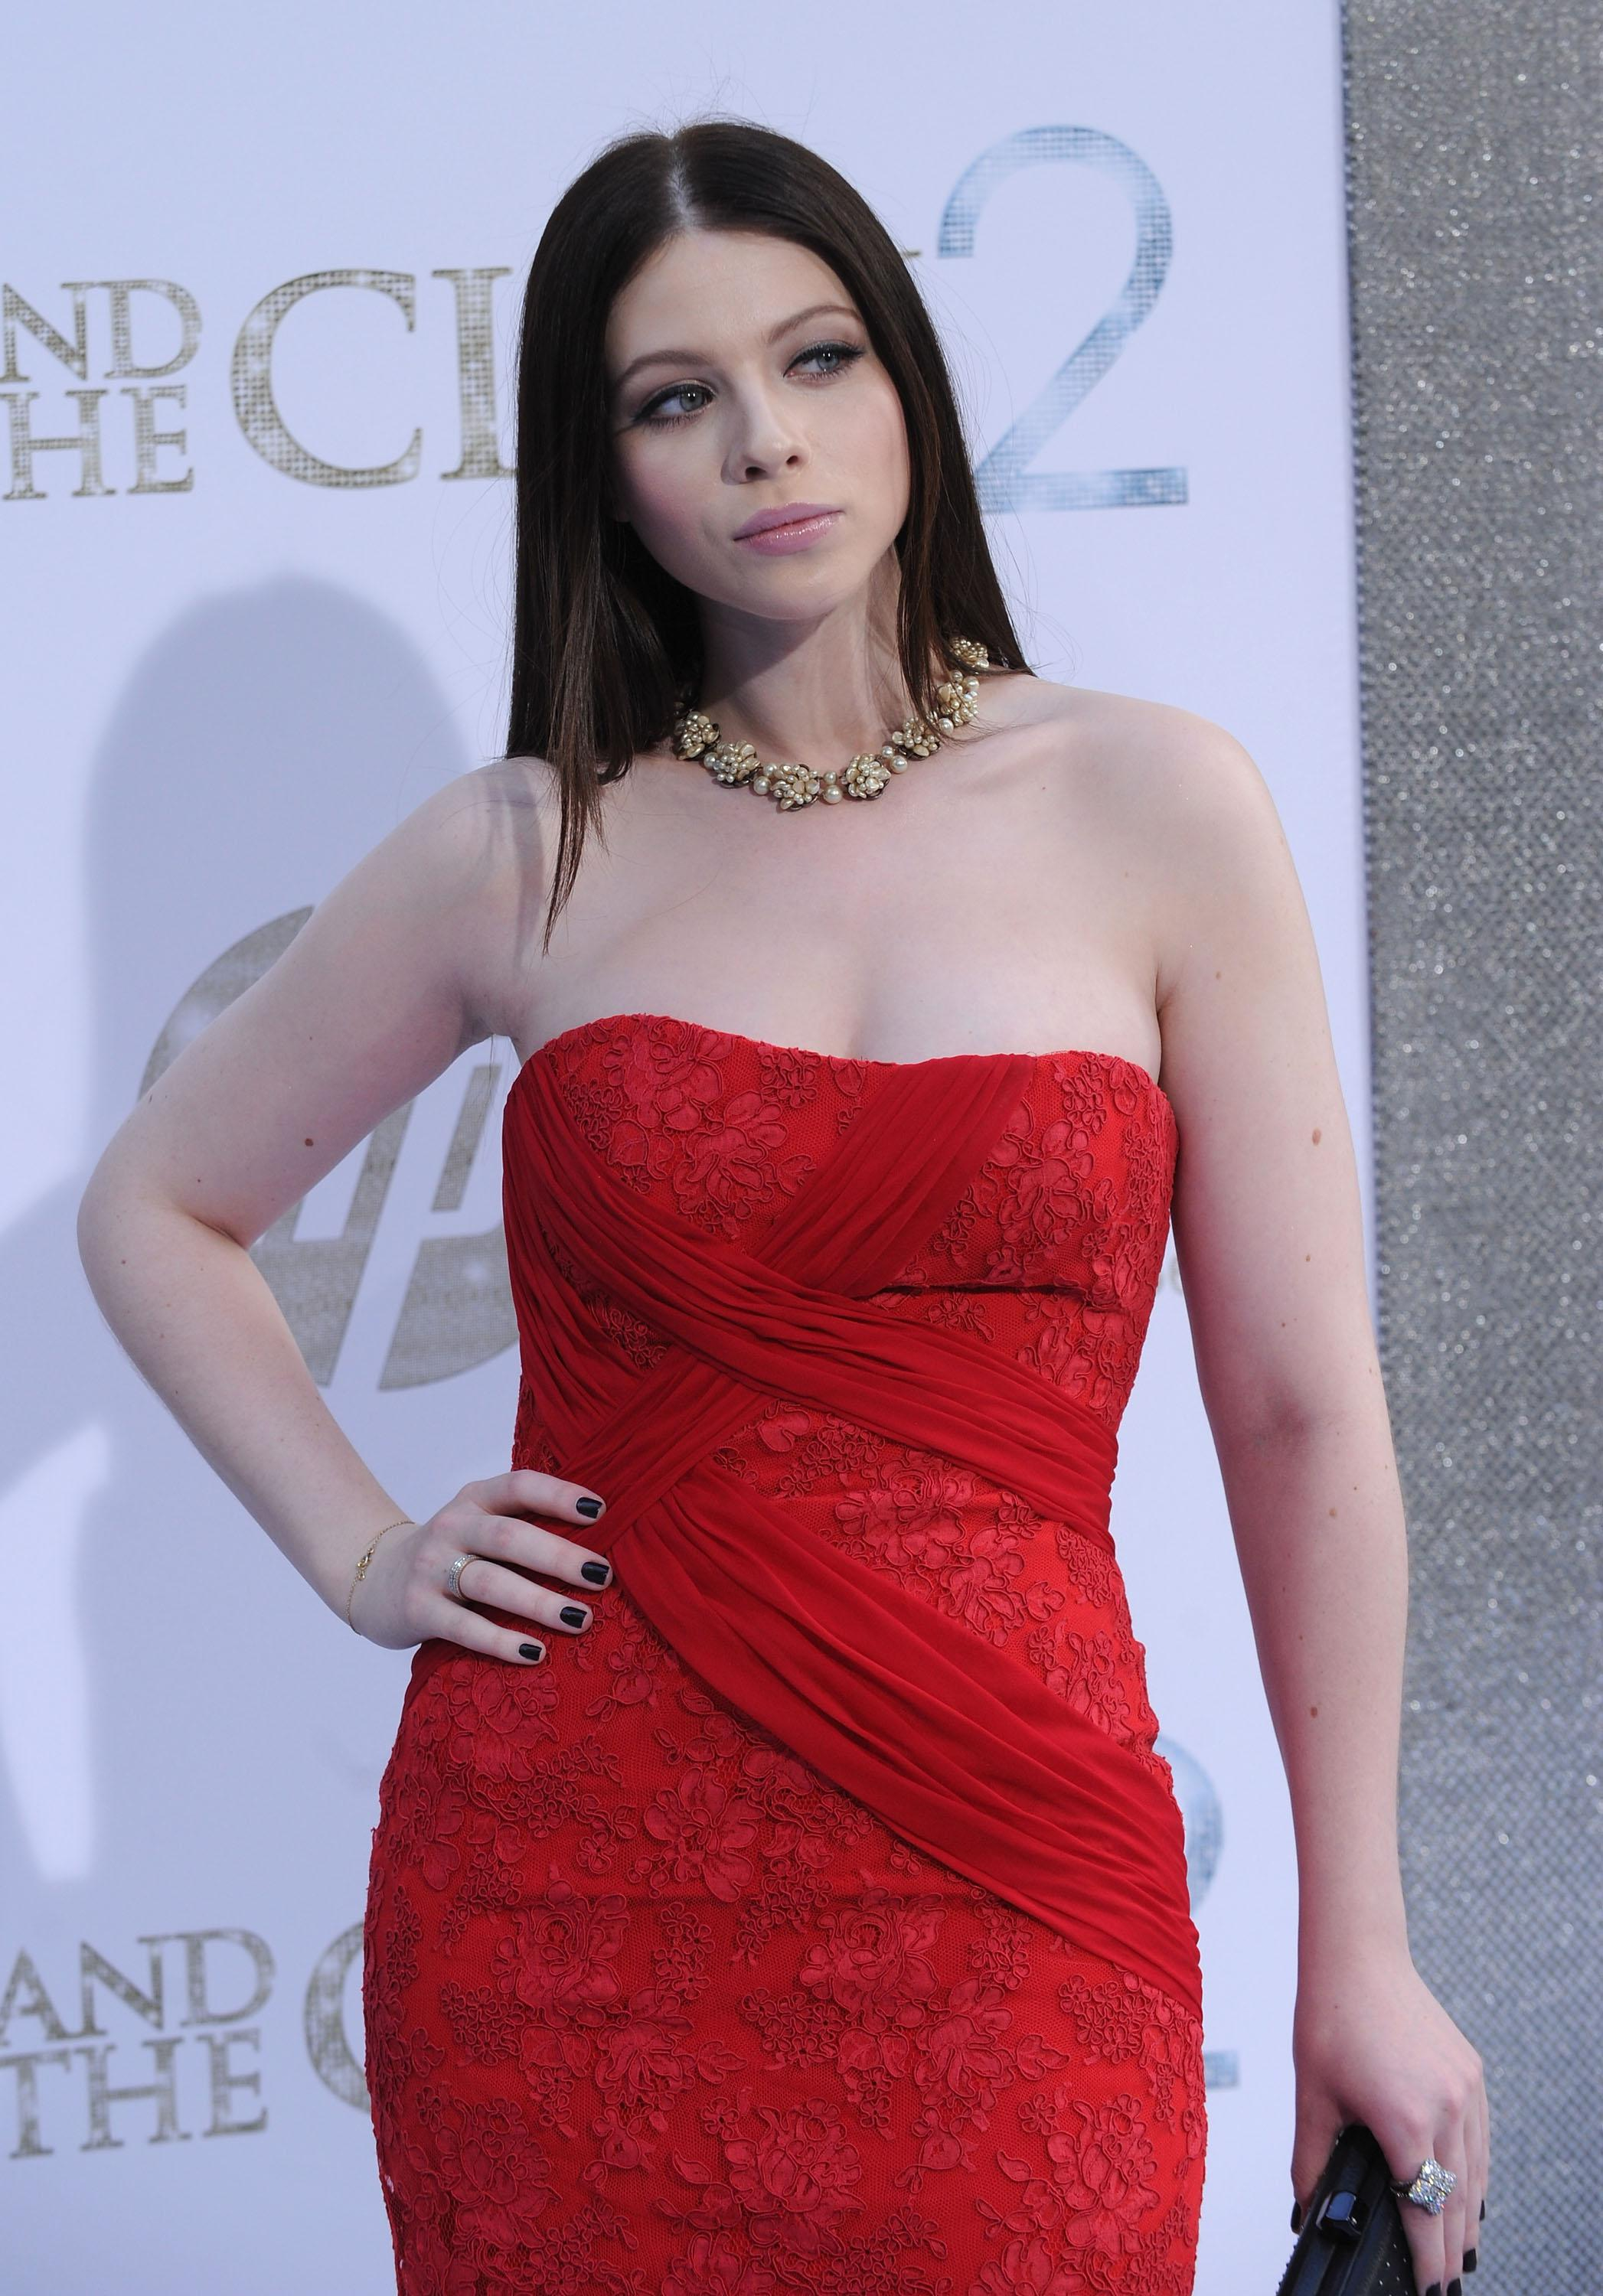 Michelle Trachtenberg Nude Pics and Videos -- - Top Nude